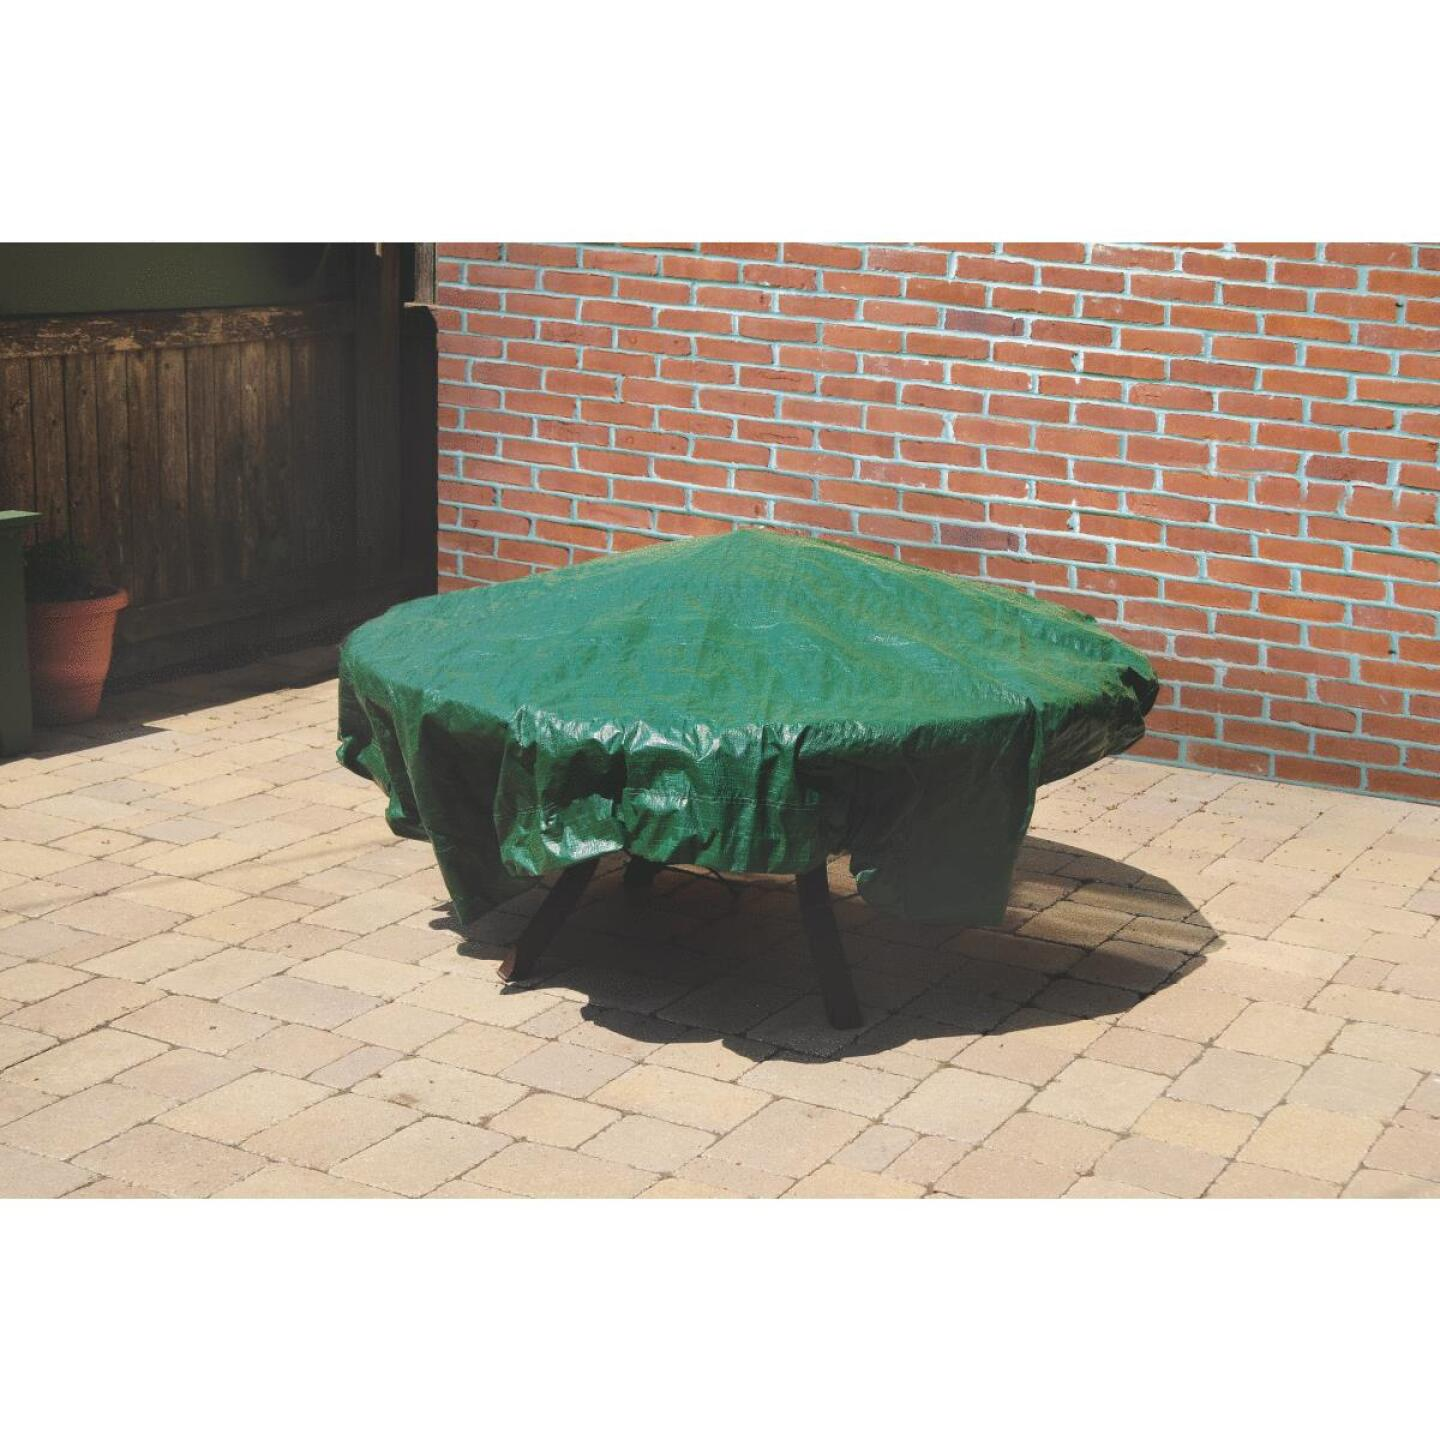 Do it 6 Ft. x 6 Ft. Poly Fabric Green Lawn Cleanup Tarp Image 6